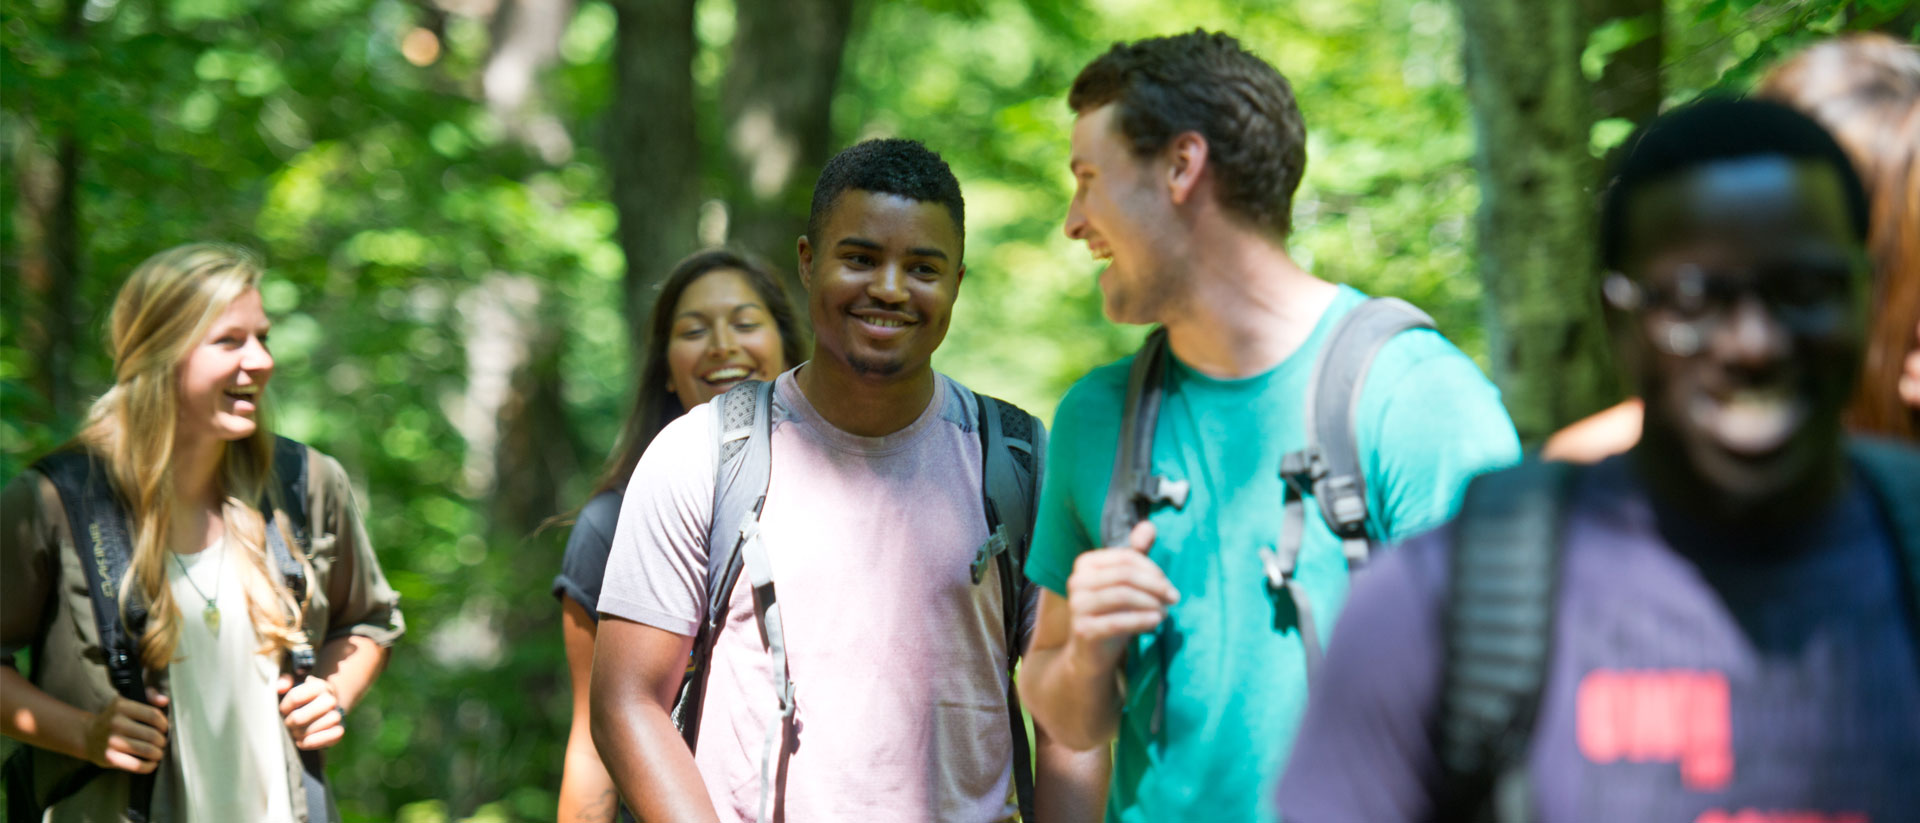 Students gather in a wooded area, smiling and laughing.